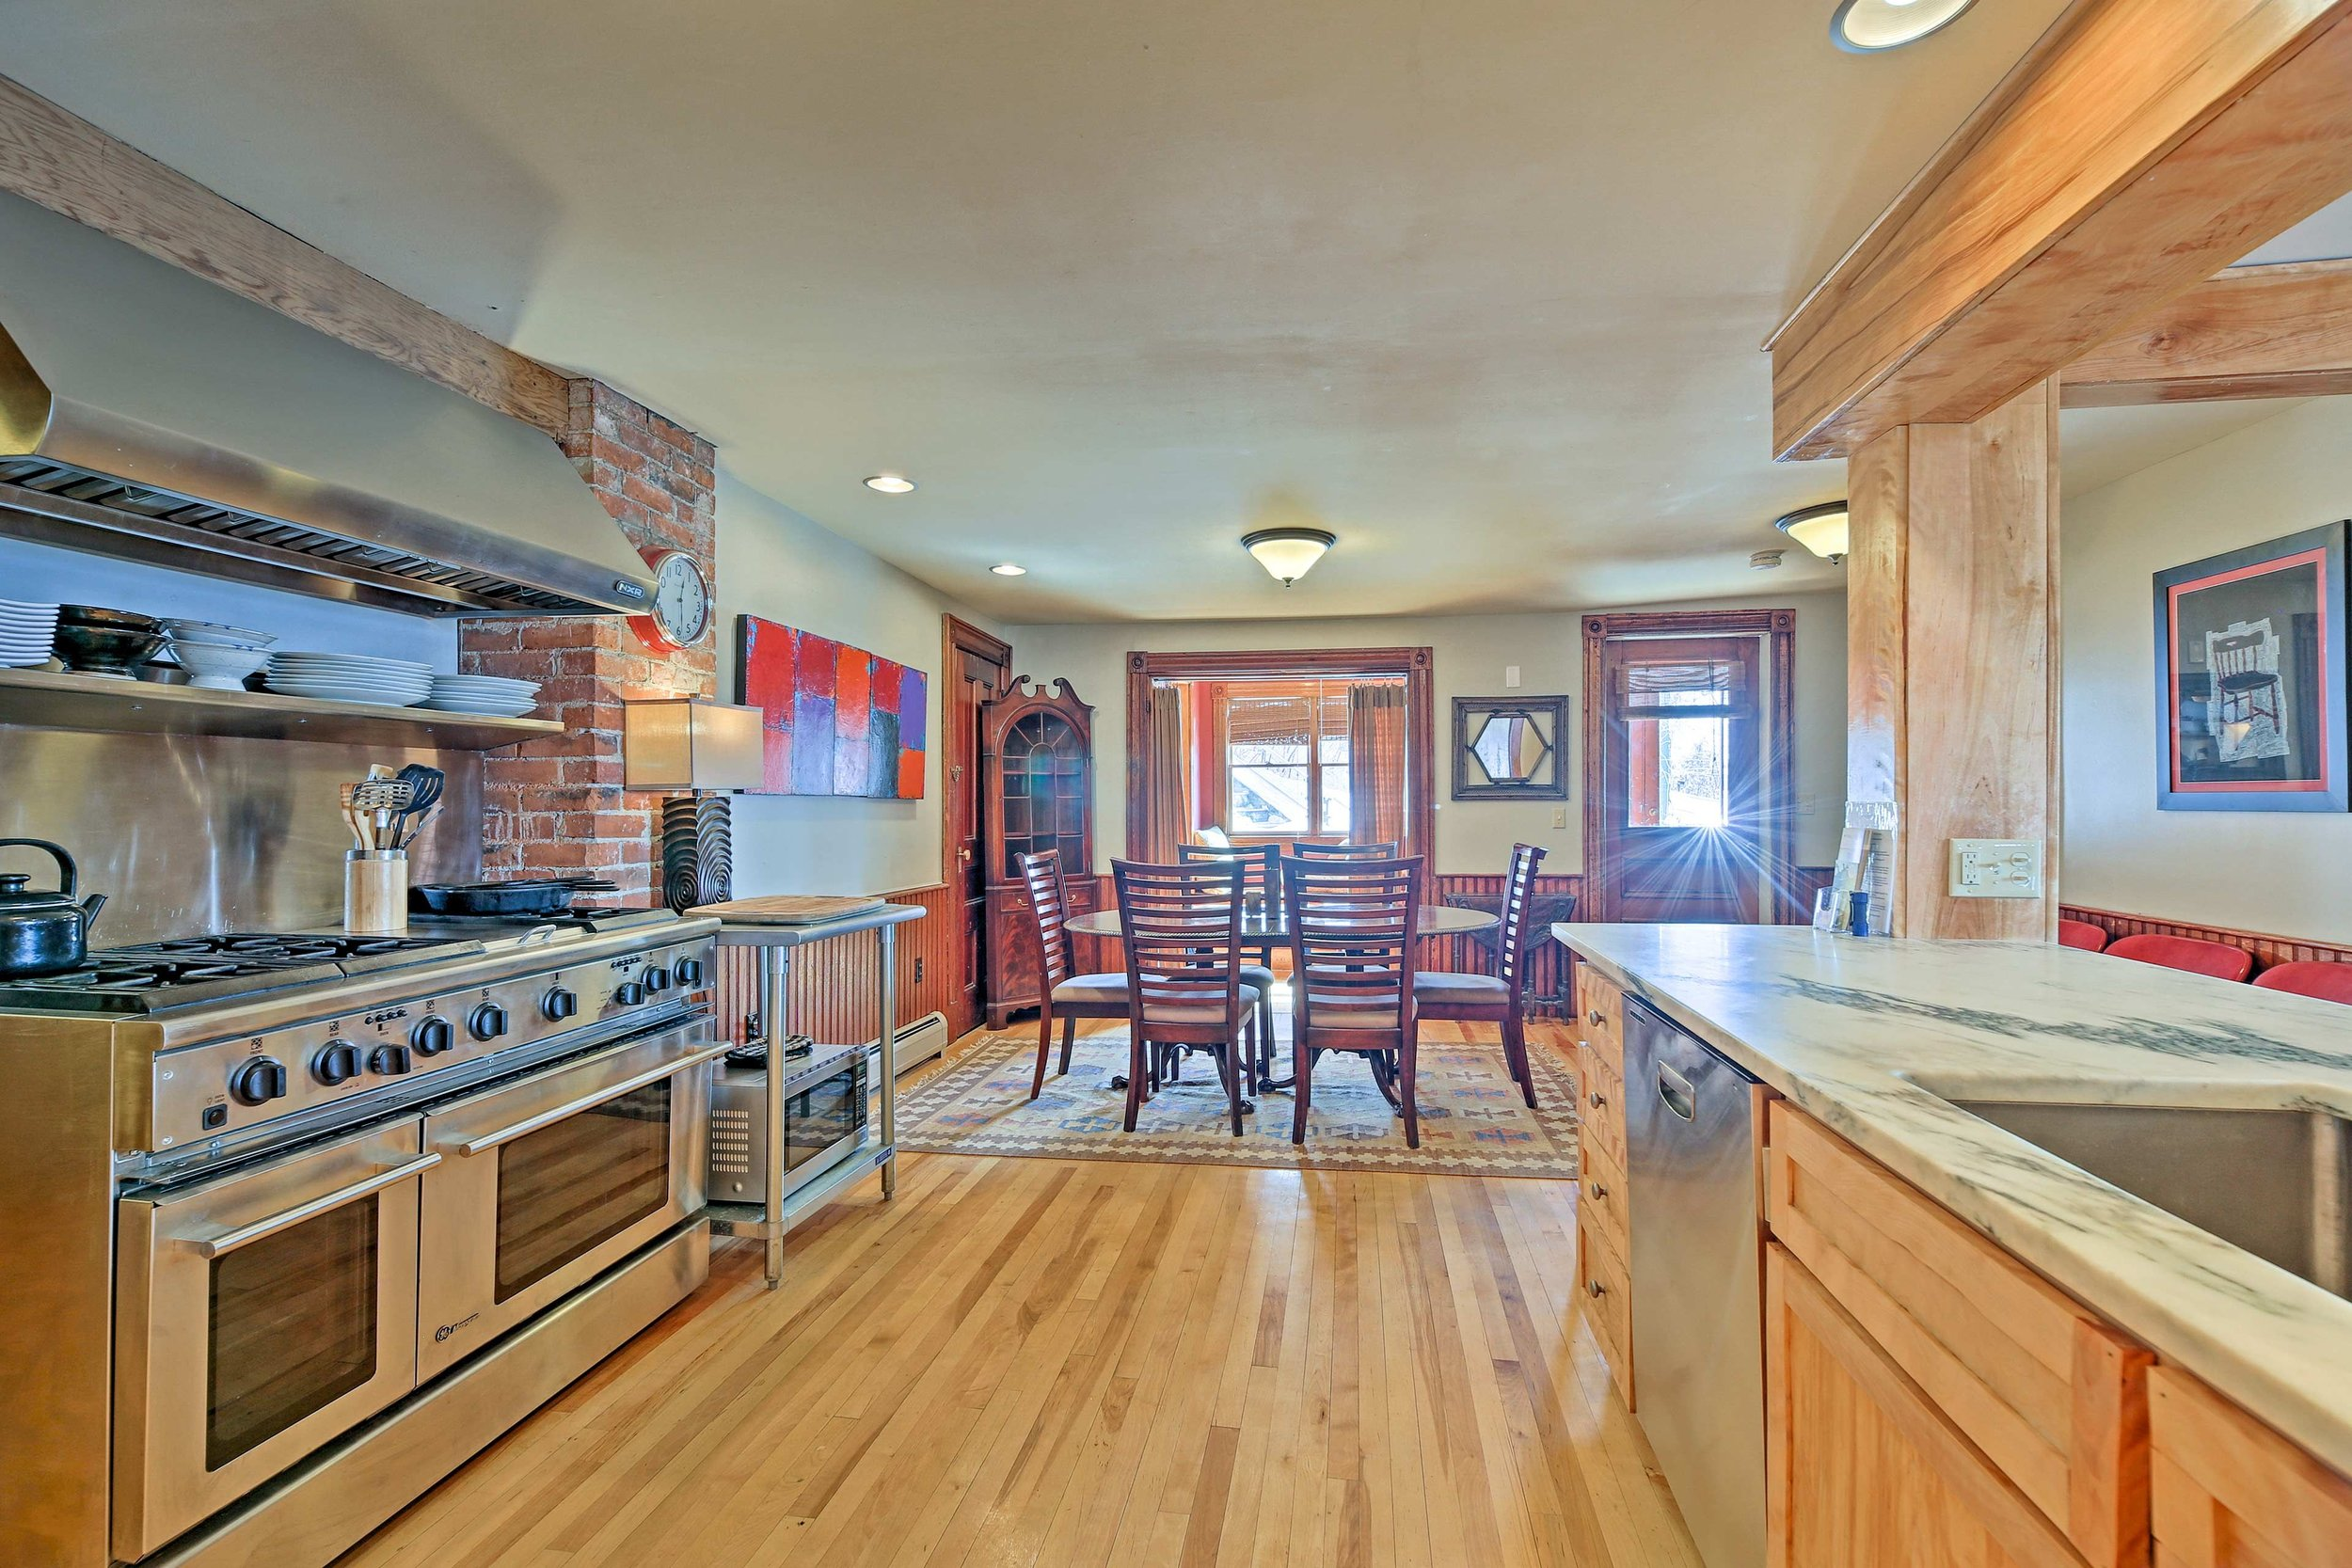 """West Wing kitchen - Warm open spacious kitchen & dining area, 8 burner stove, dual convection ovens, 36"""" refrigerator, dishwasher"""